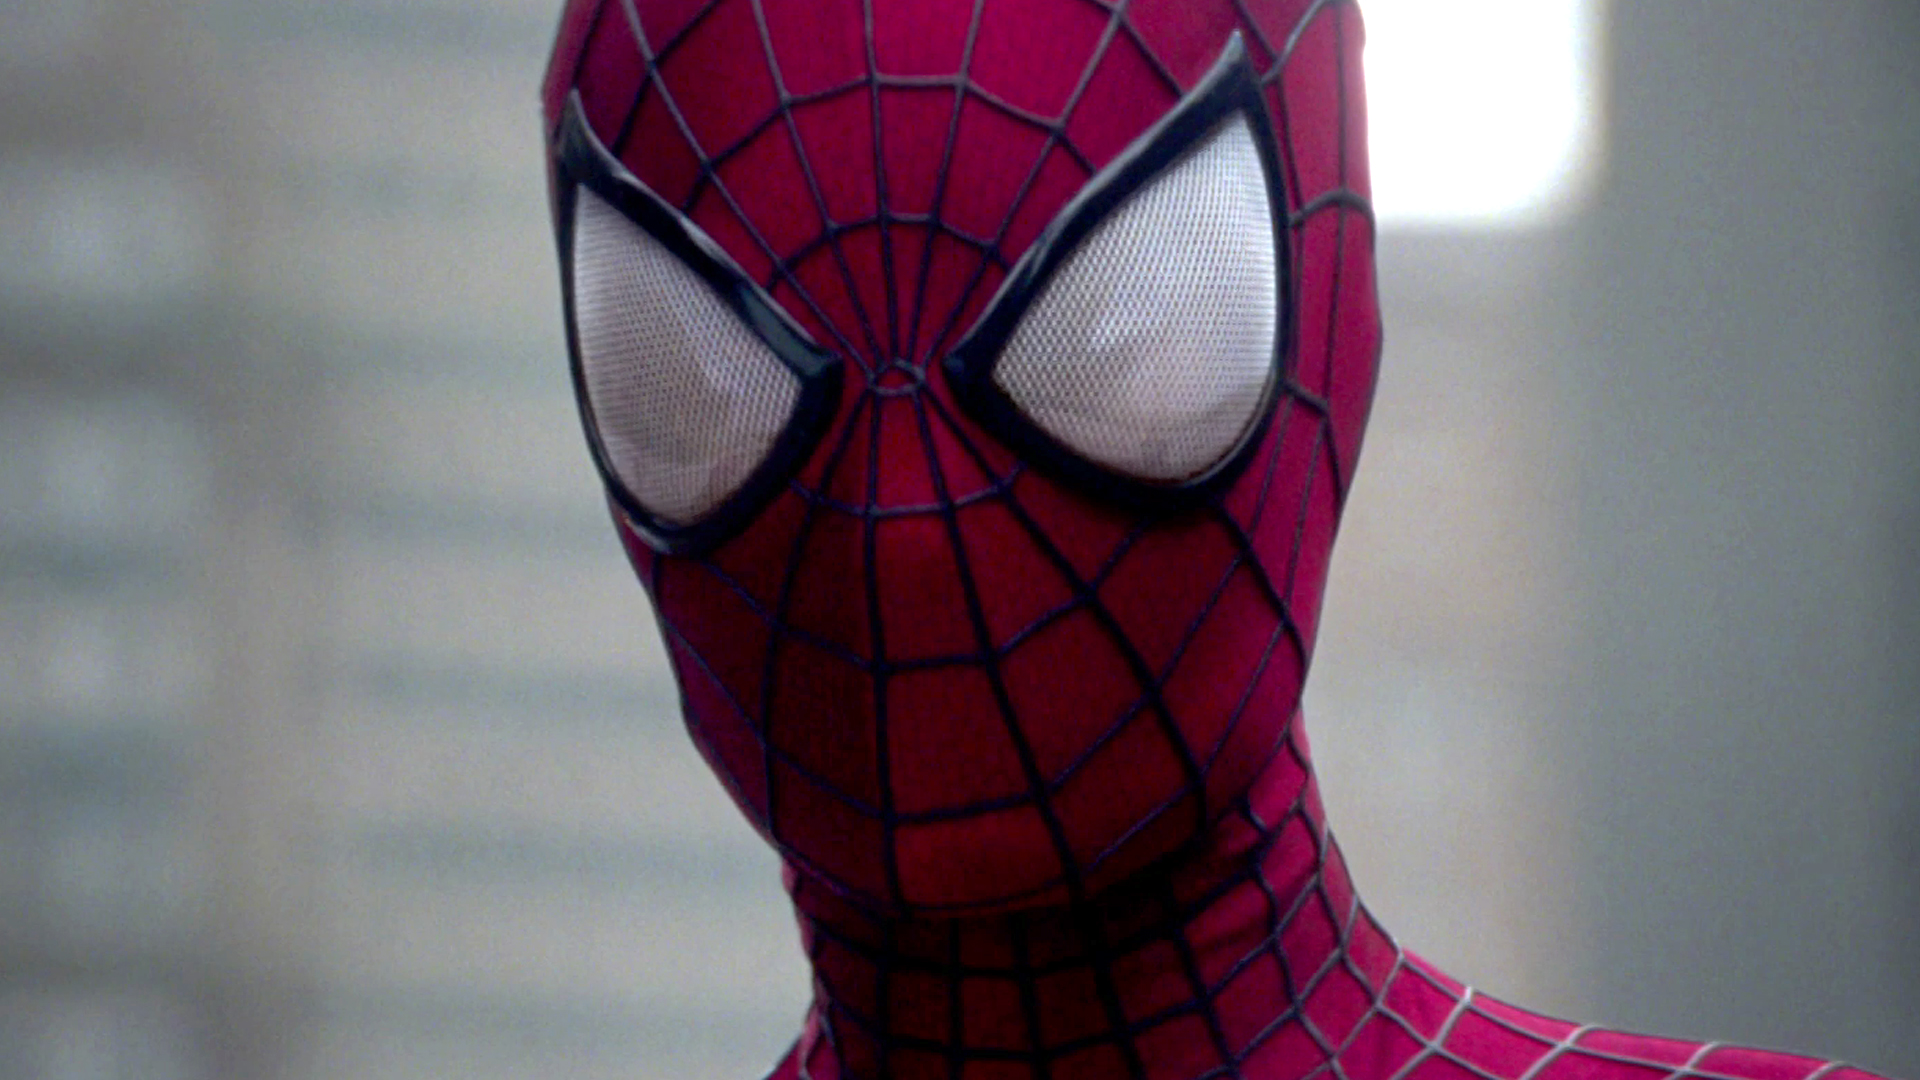 The Amazing Spider-Man 2 Soundtrack List